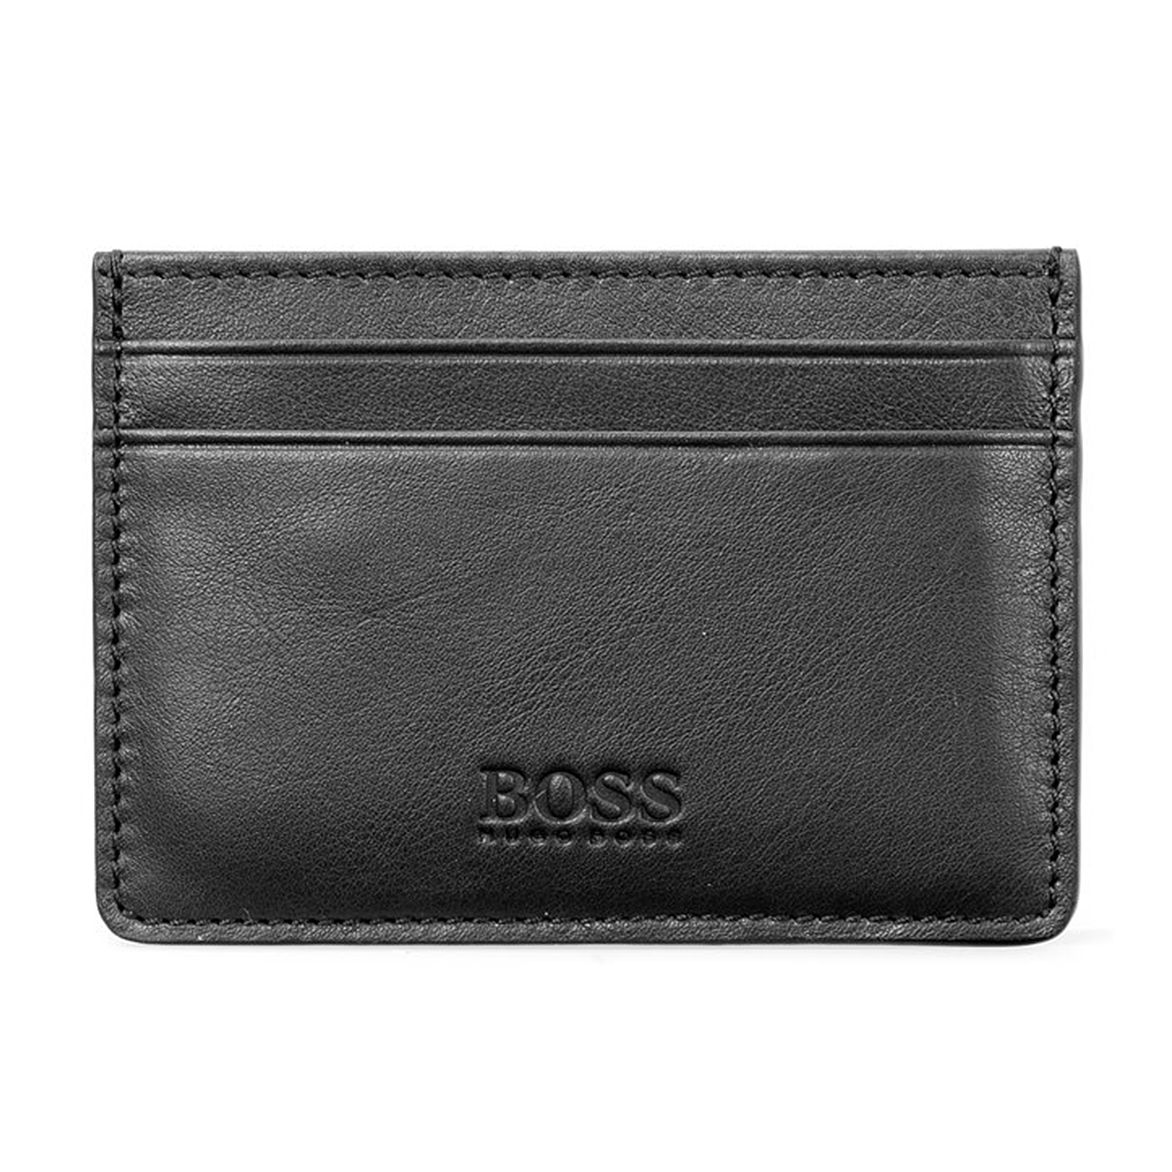 BOSS Majestic Men's Black Leather Cardholder - Product number 9694269